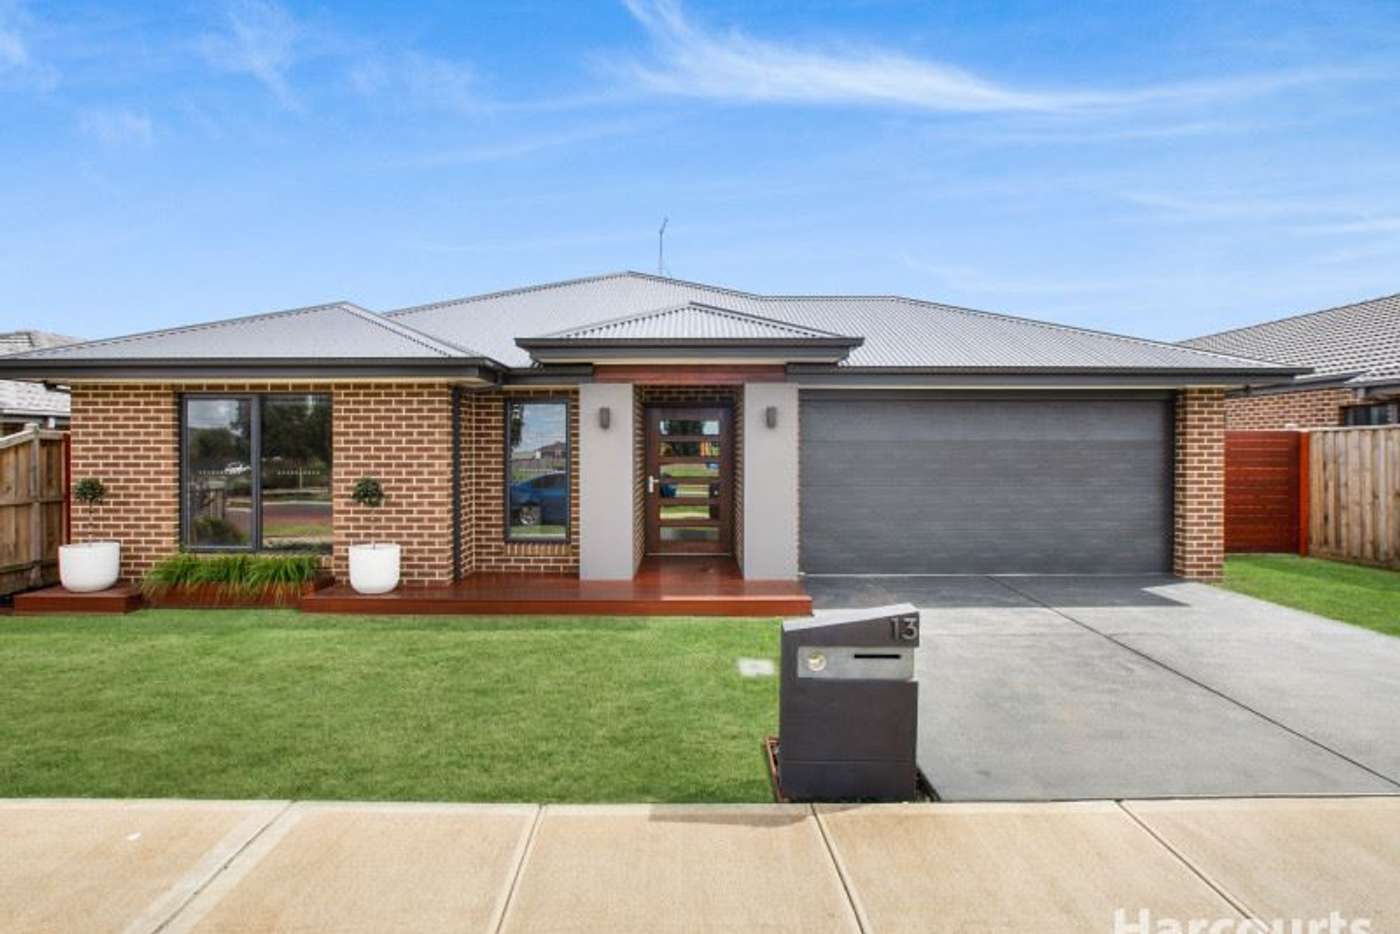 Main view of Homely house listing, 13 Coventry Drive, Warragul VIC 3820